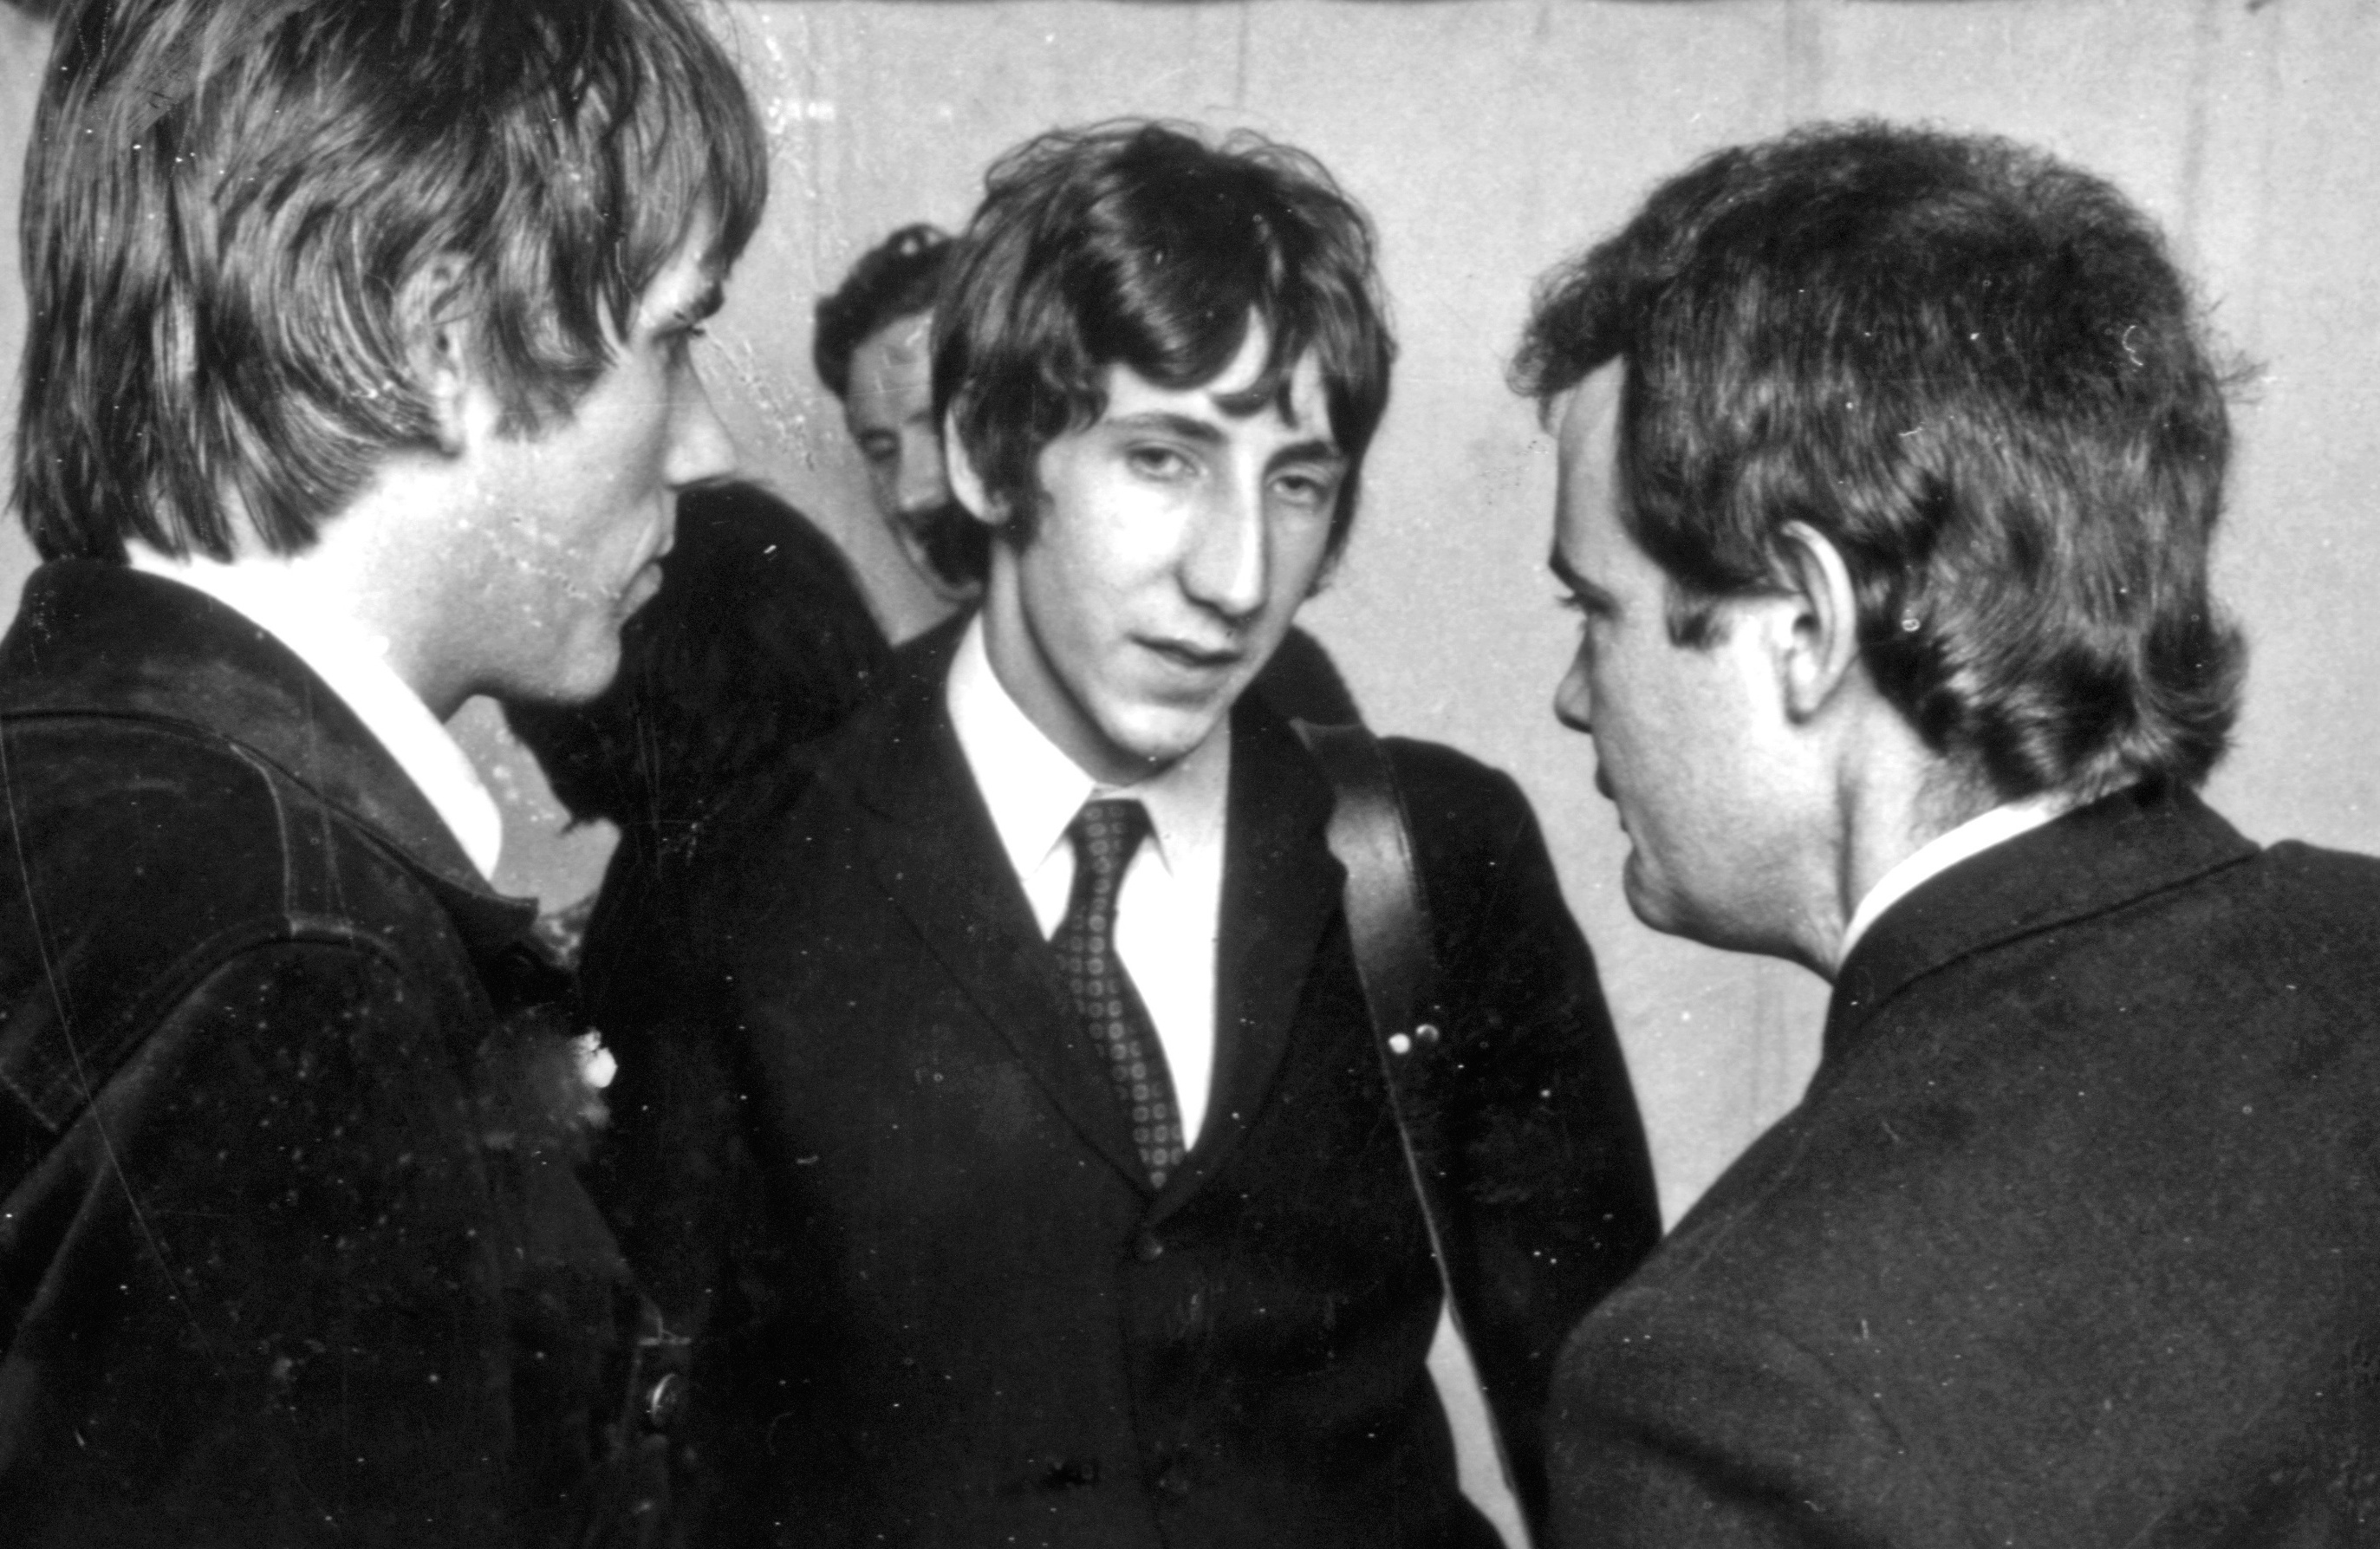 THE WHO with Chris Stamp at left. Pete Townshend and Kit Lambert at Windsor Jazz Festival in 1966